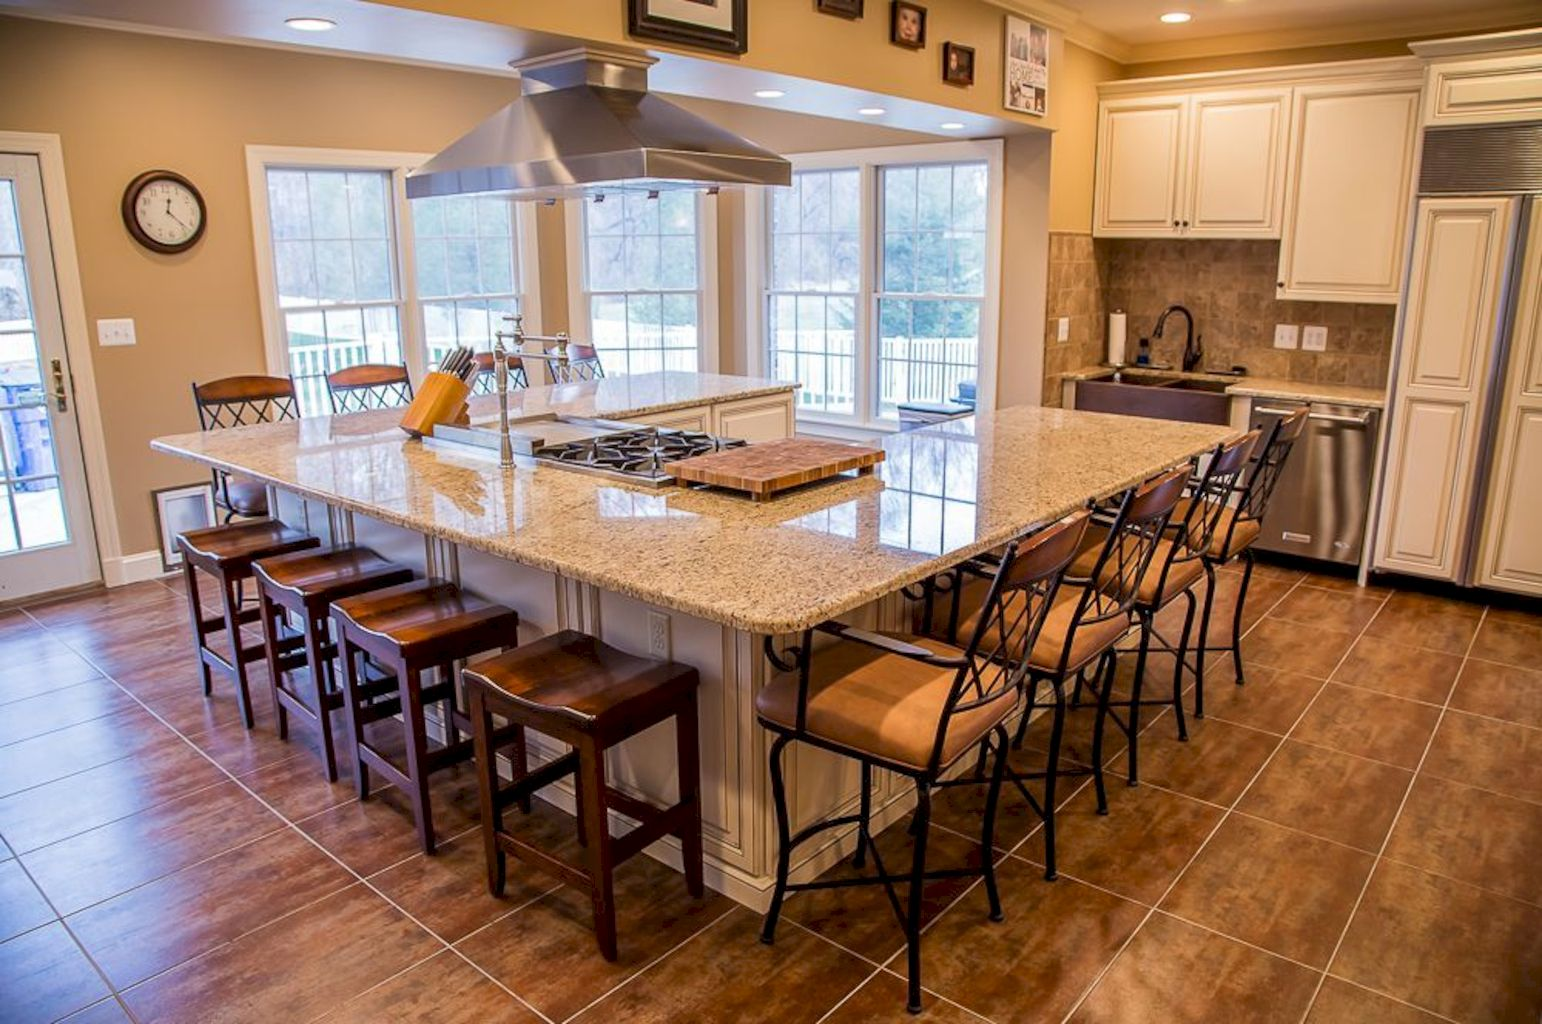 Best kitchen island table combo with an ergonomic design very efficient to improve kitchen functionality Image 13